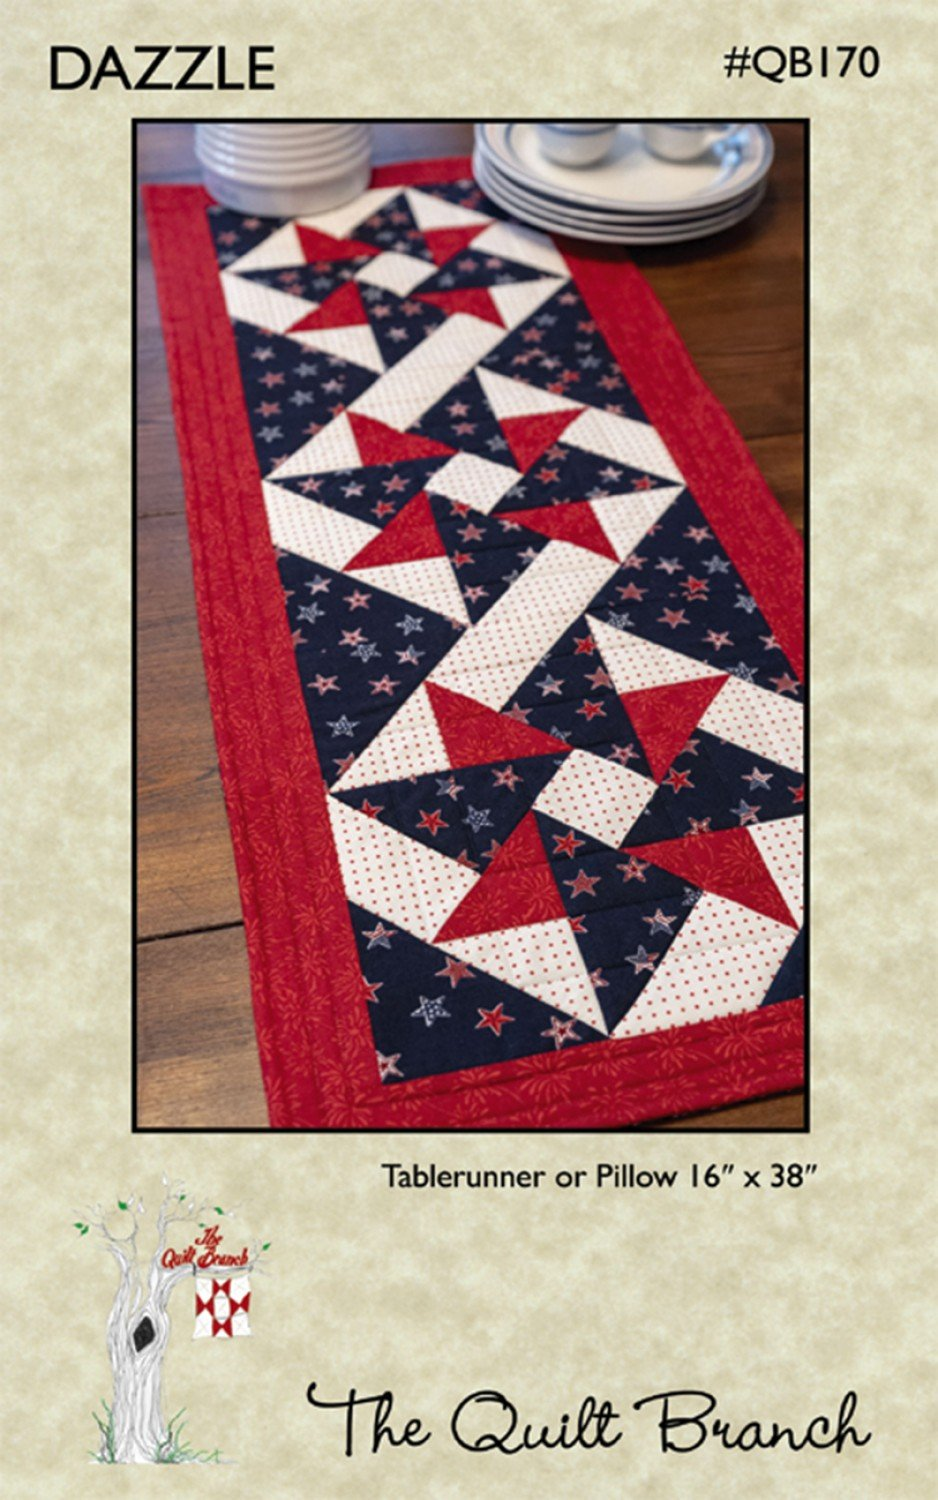 Dazzle table runner pattern by The Quilt Branch QB170